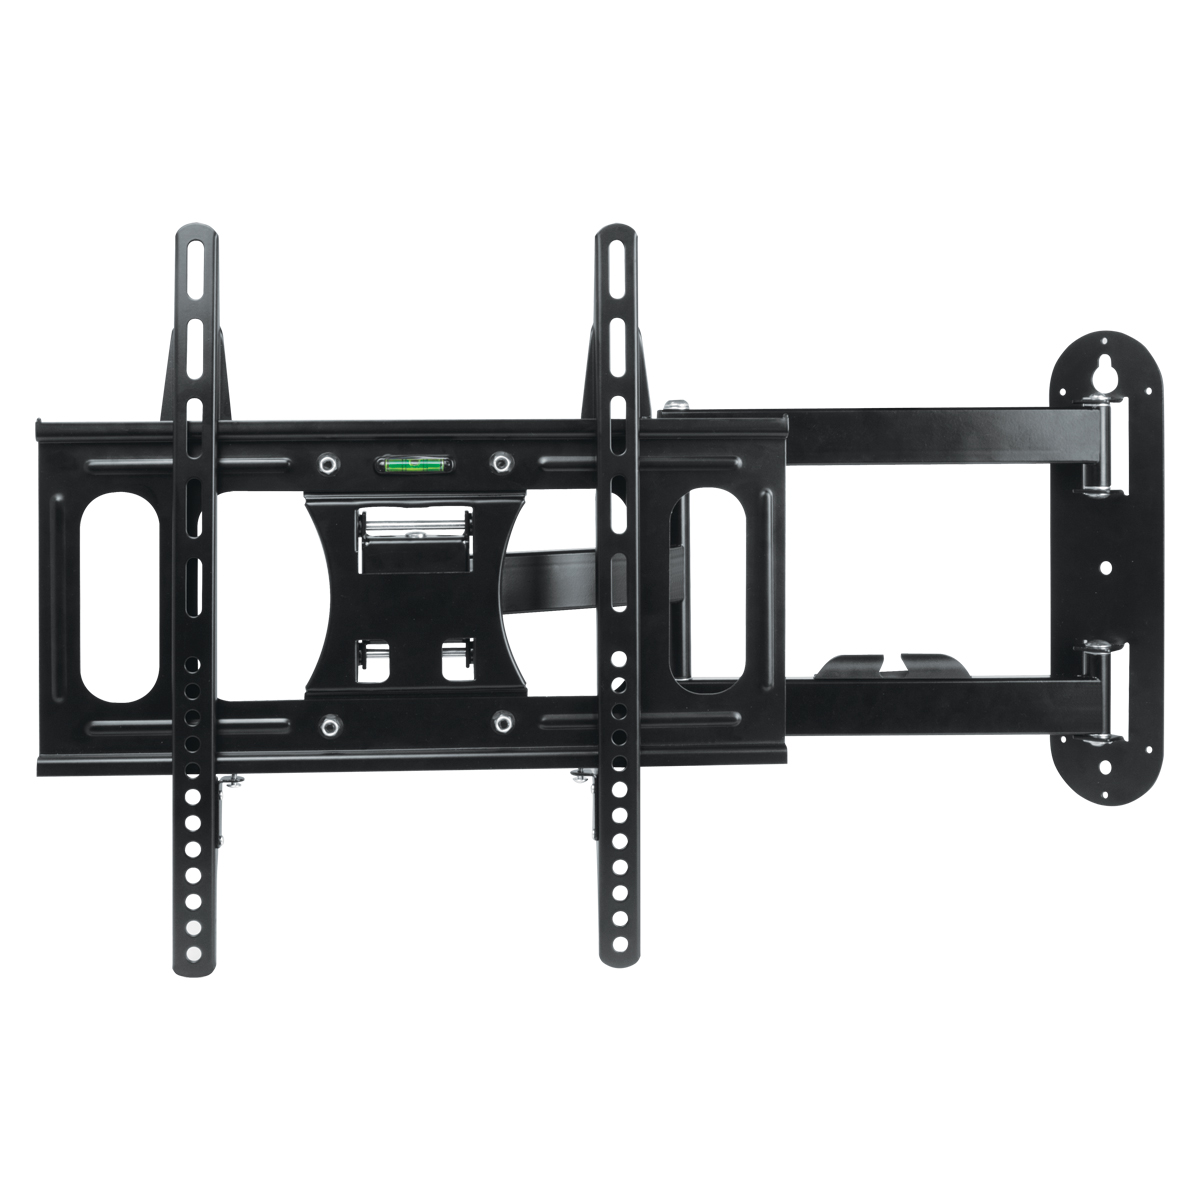 Full-Motion TV Wall Mount ARCTIC TV Flex M Swivel Adjustment